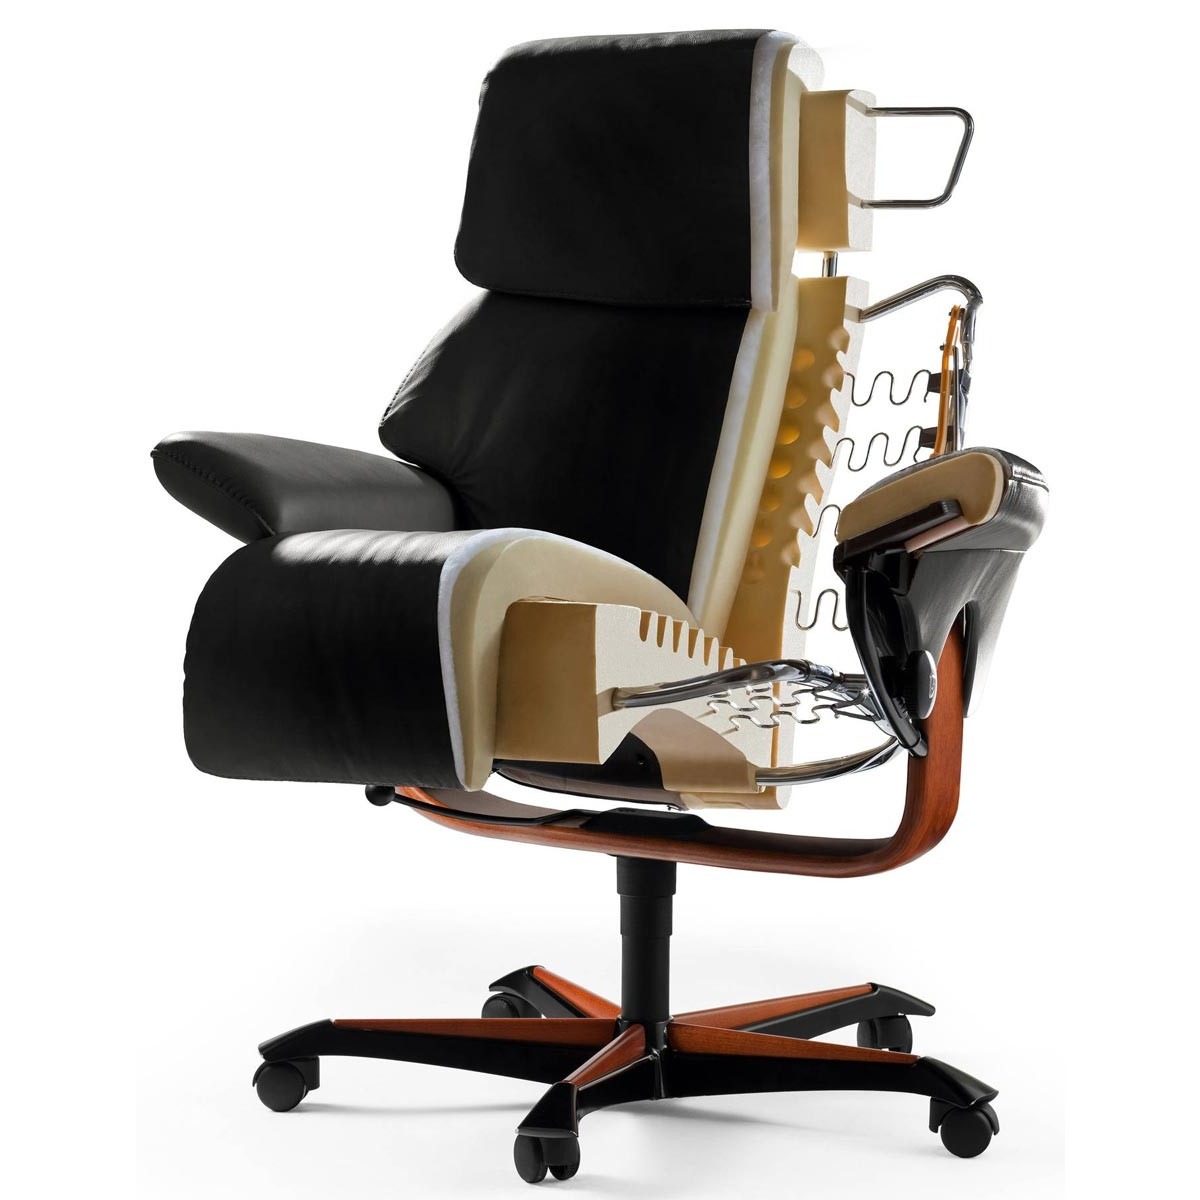 stressless chairs reviews office chair youtube mayfair from 2 595 00 by